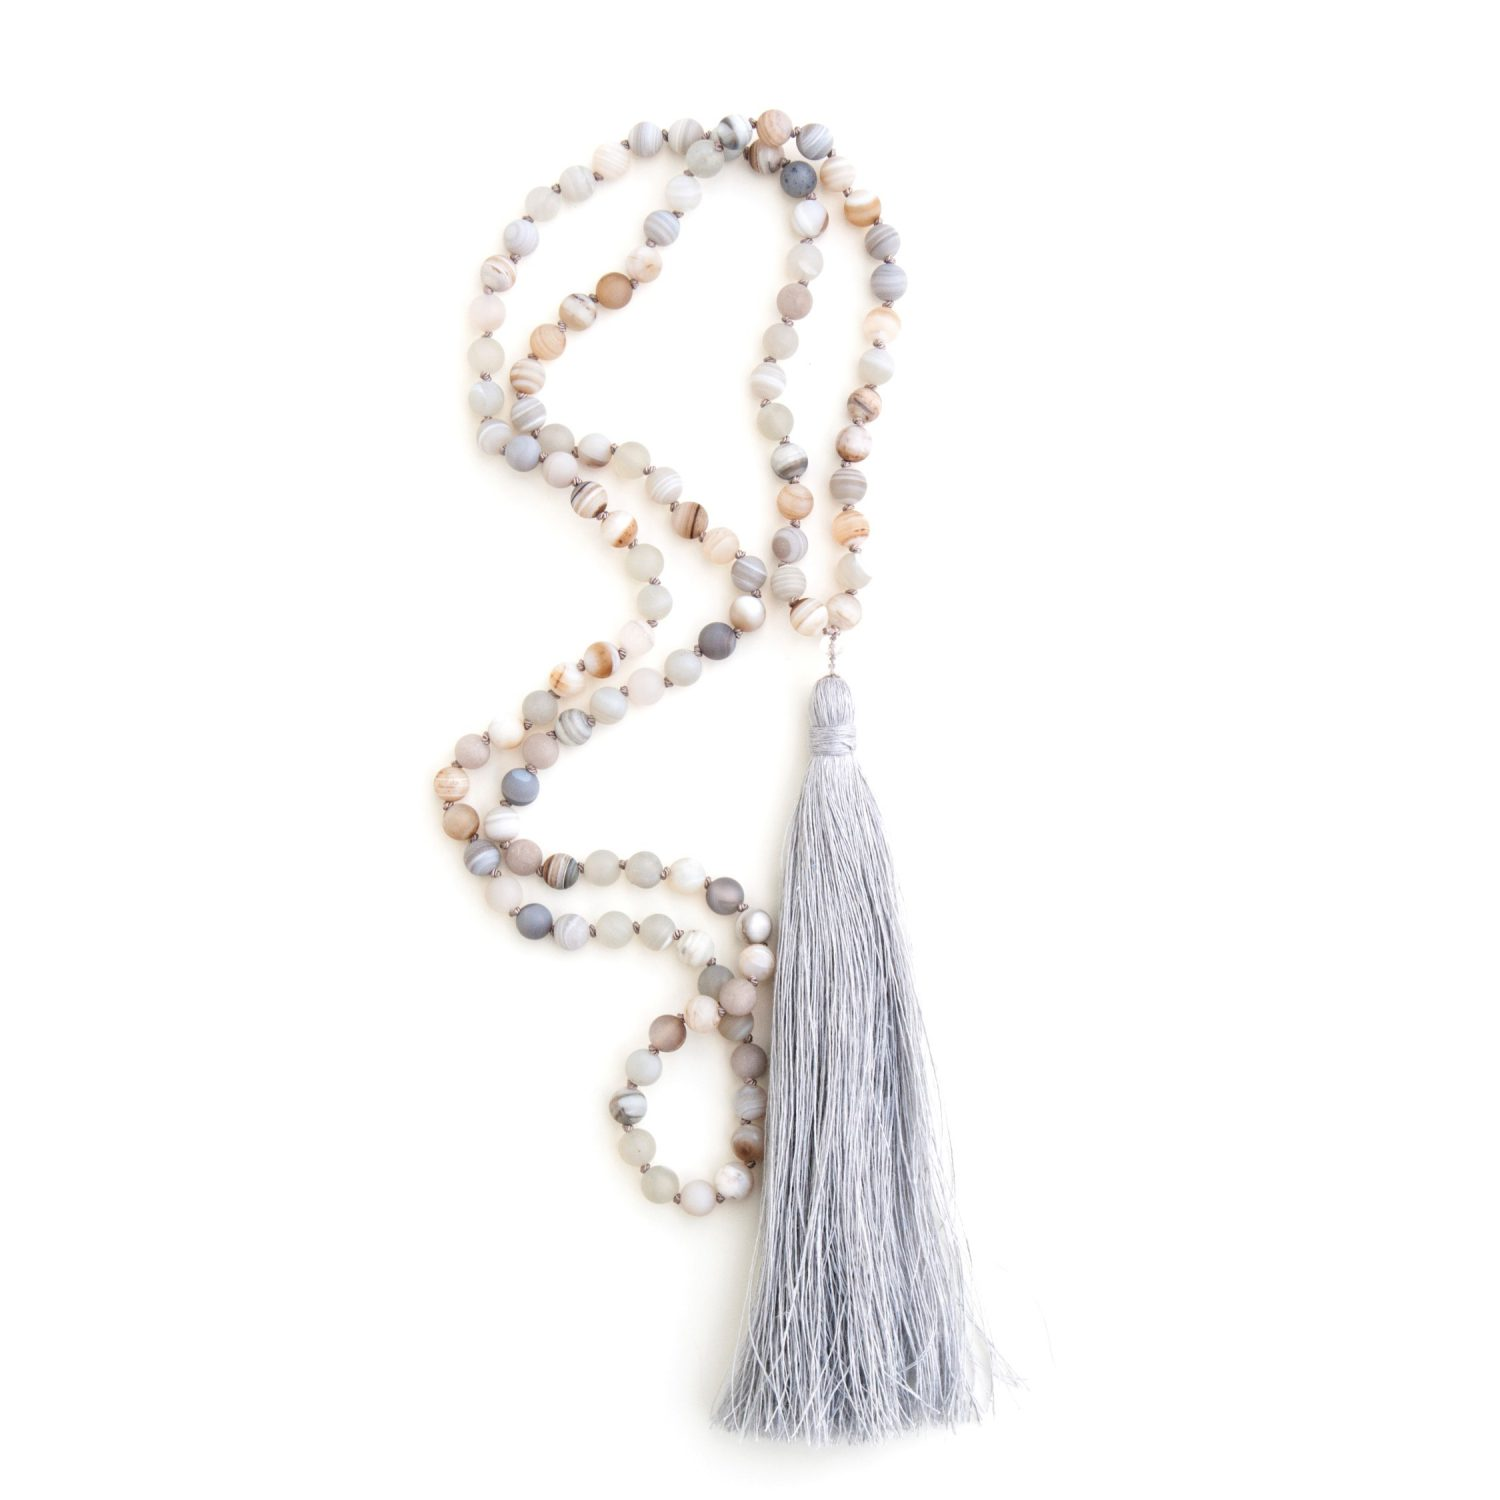 Agate mala for grounding by Pure Prana Label